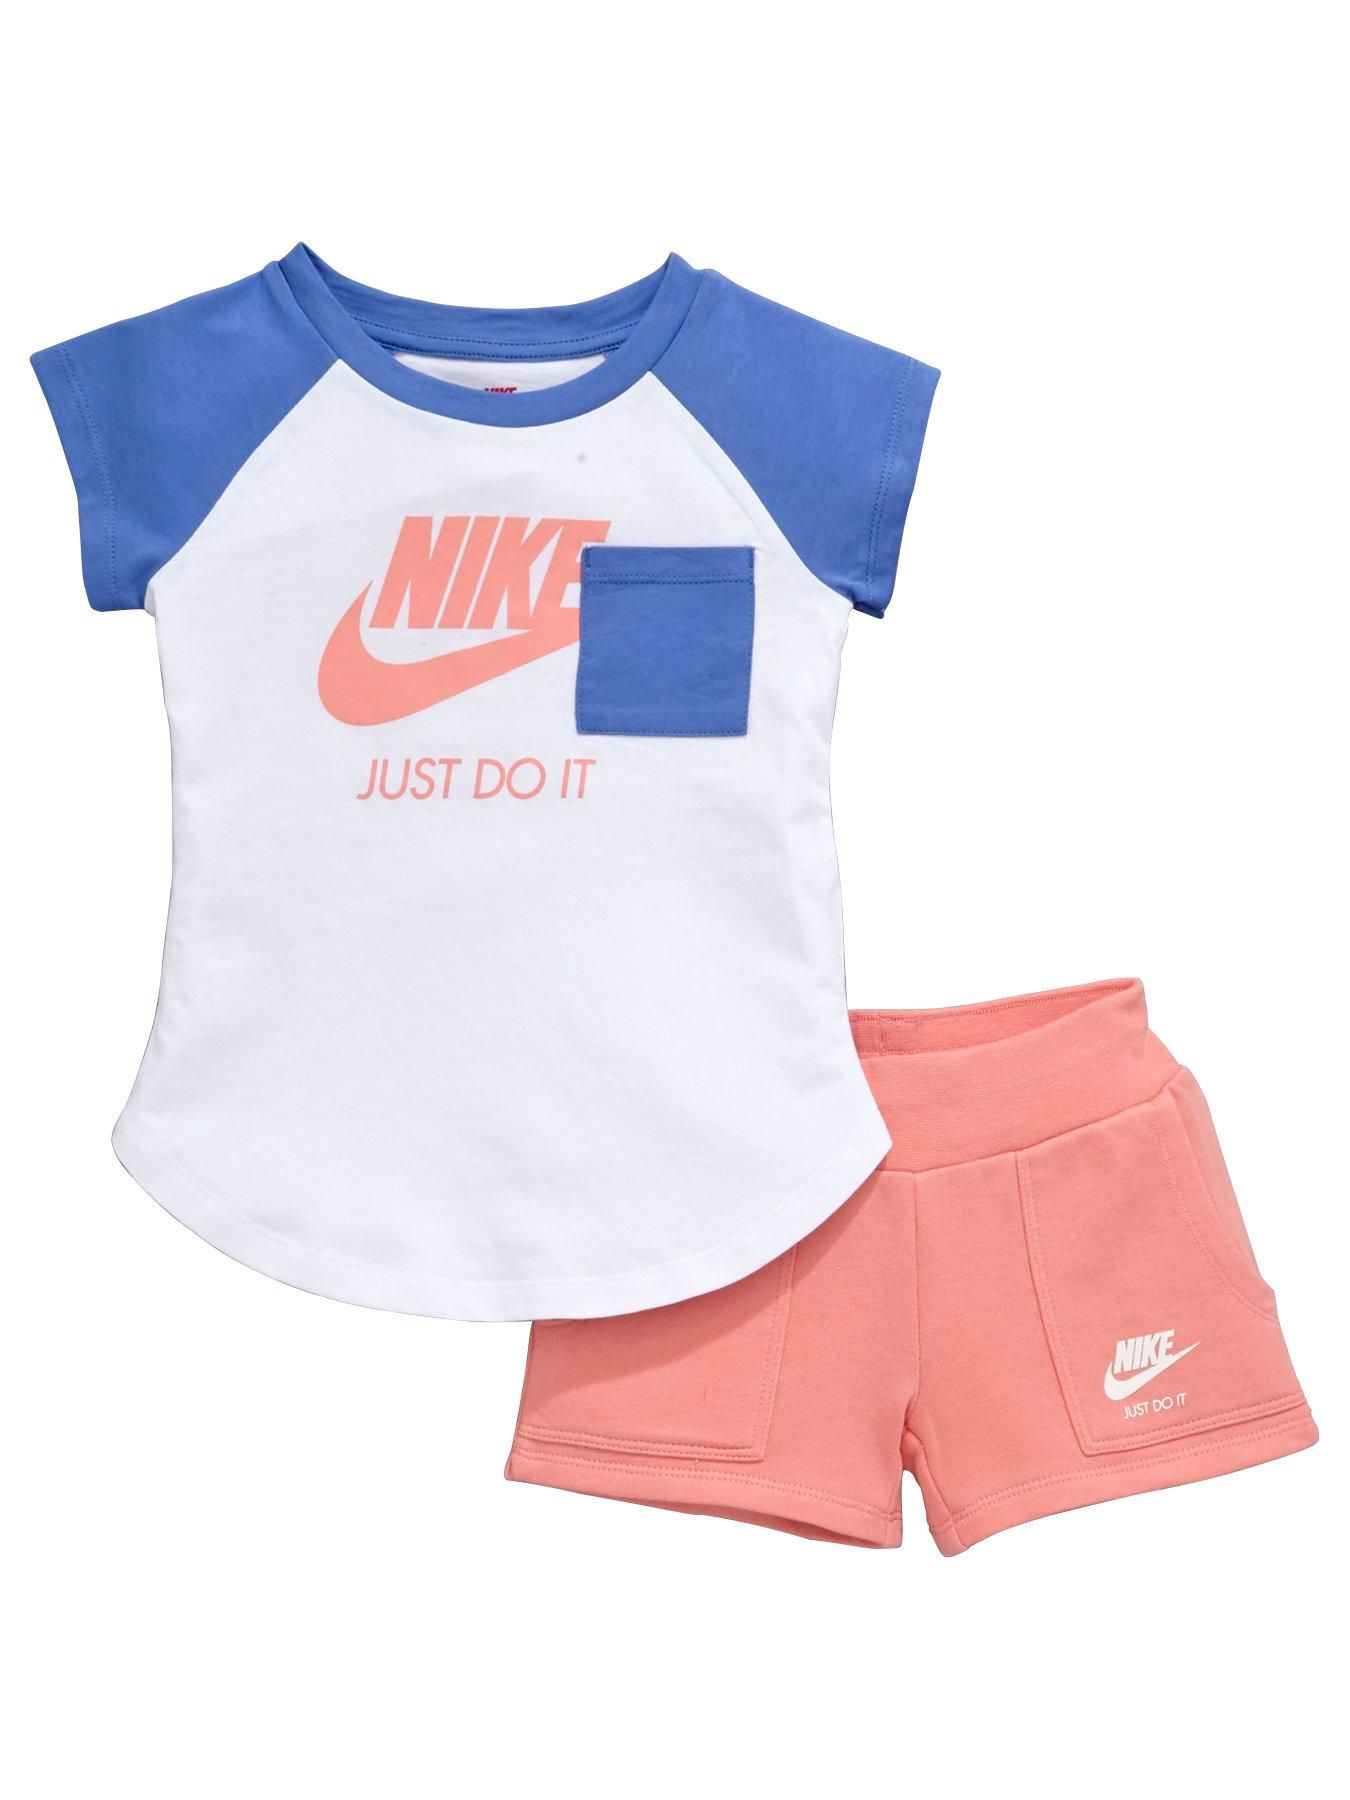 Nike Baby Girl Clothes Enchanting Washing Instructions Machine Washable100% Cotton  Littlewood Design Inspiration